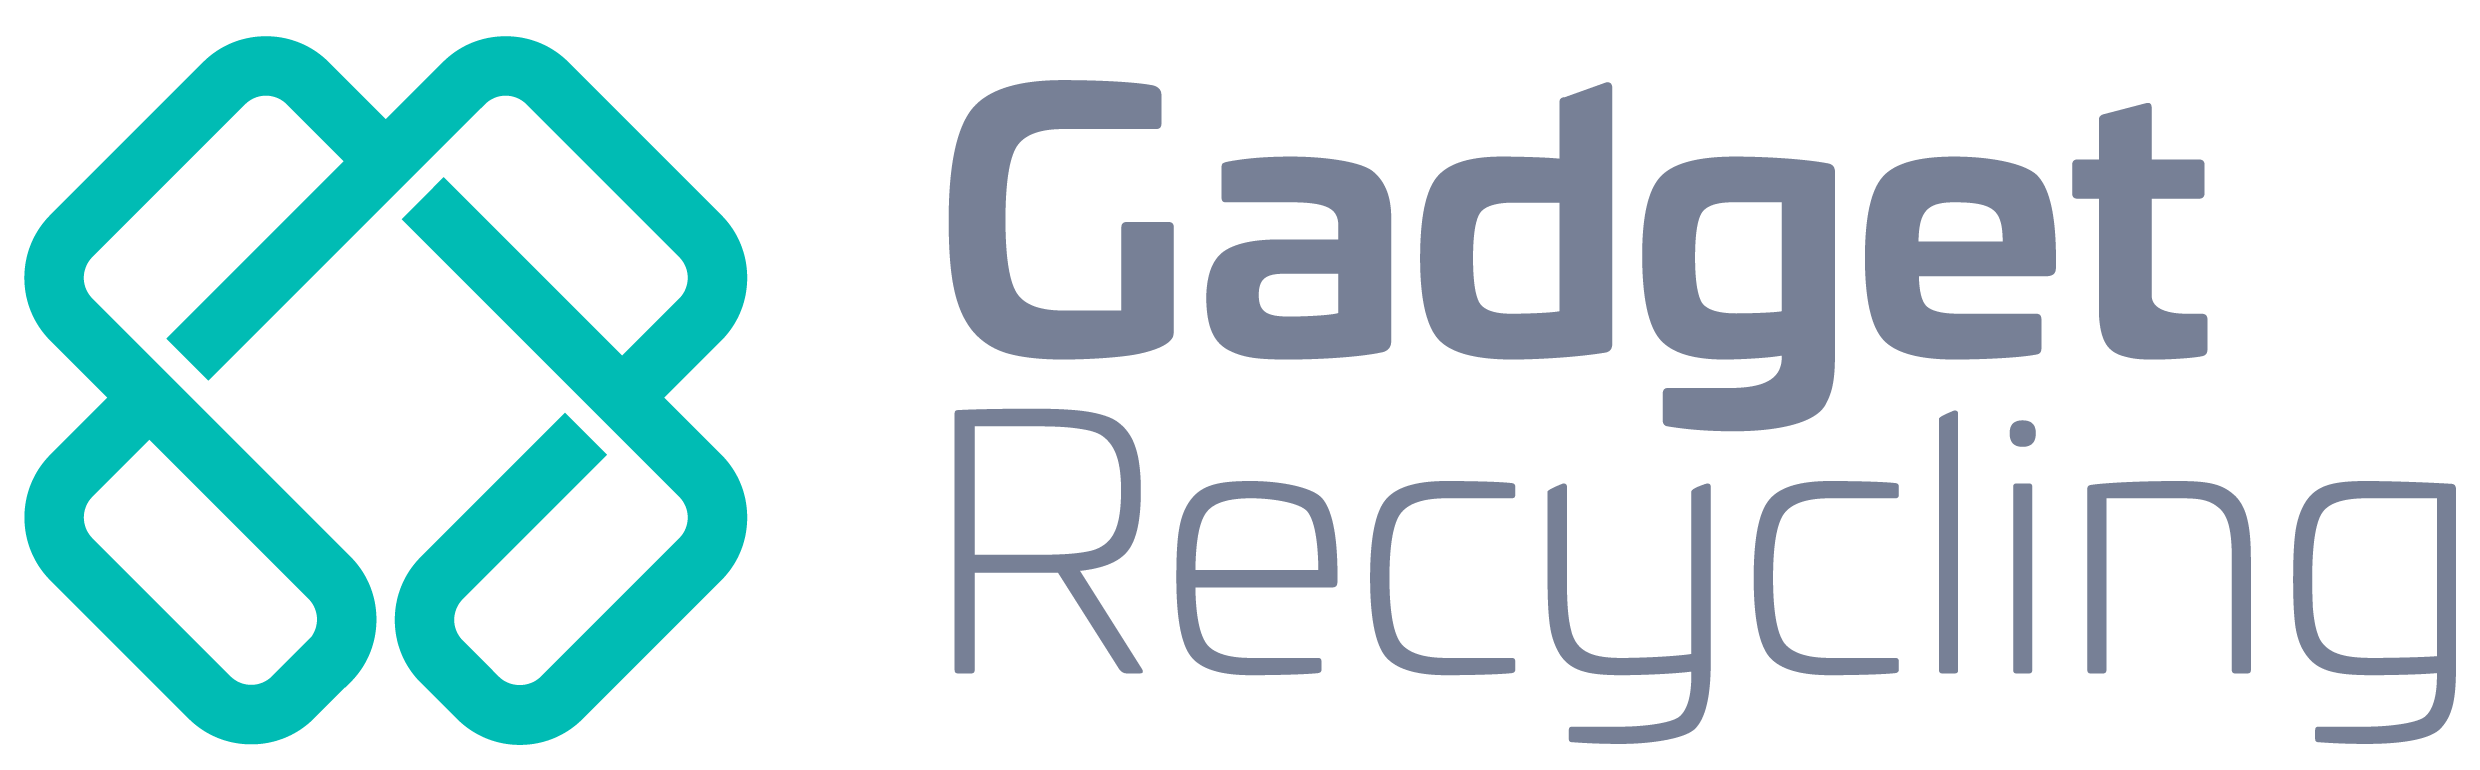 Gadget Recycling Ltd.